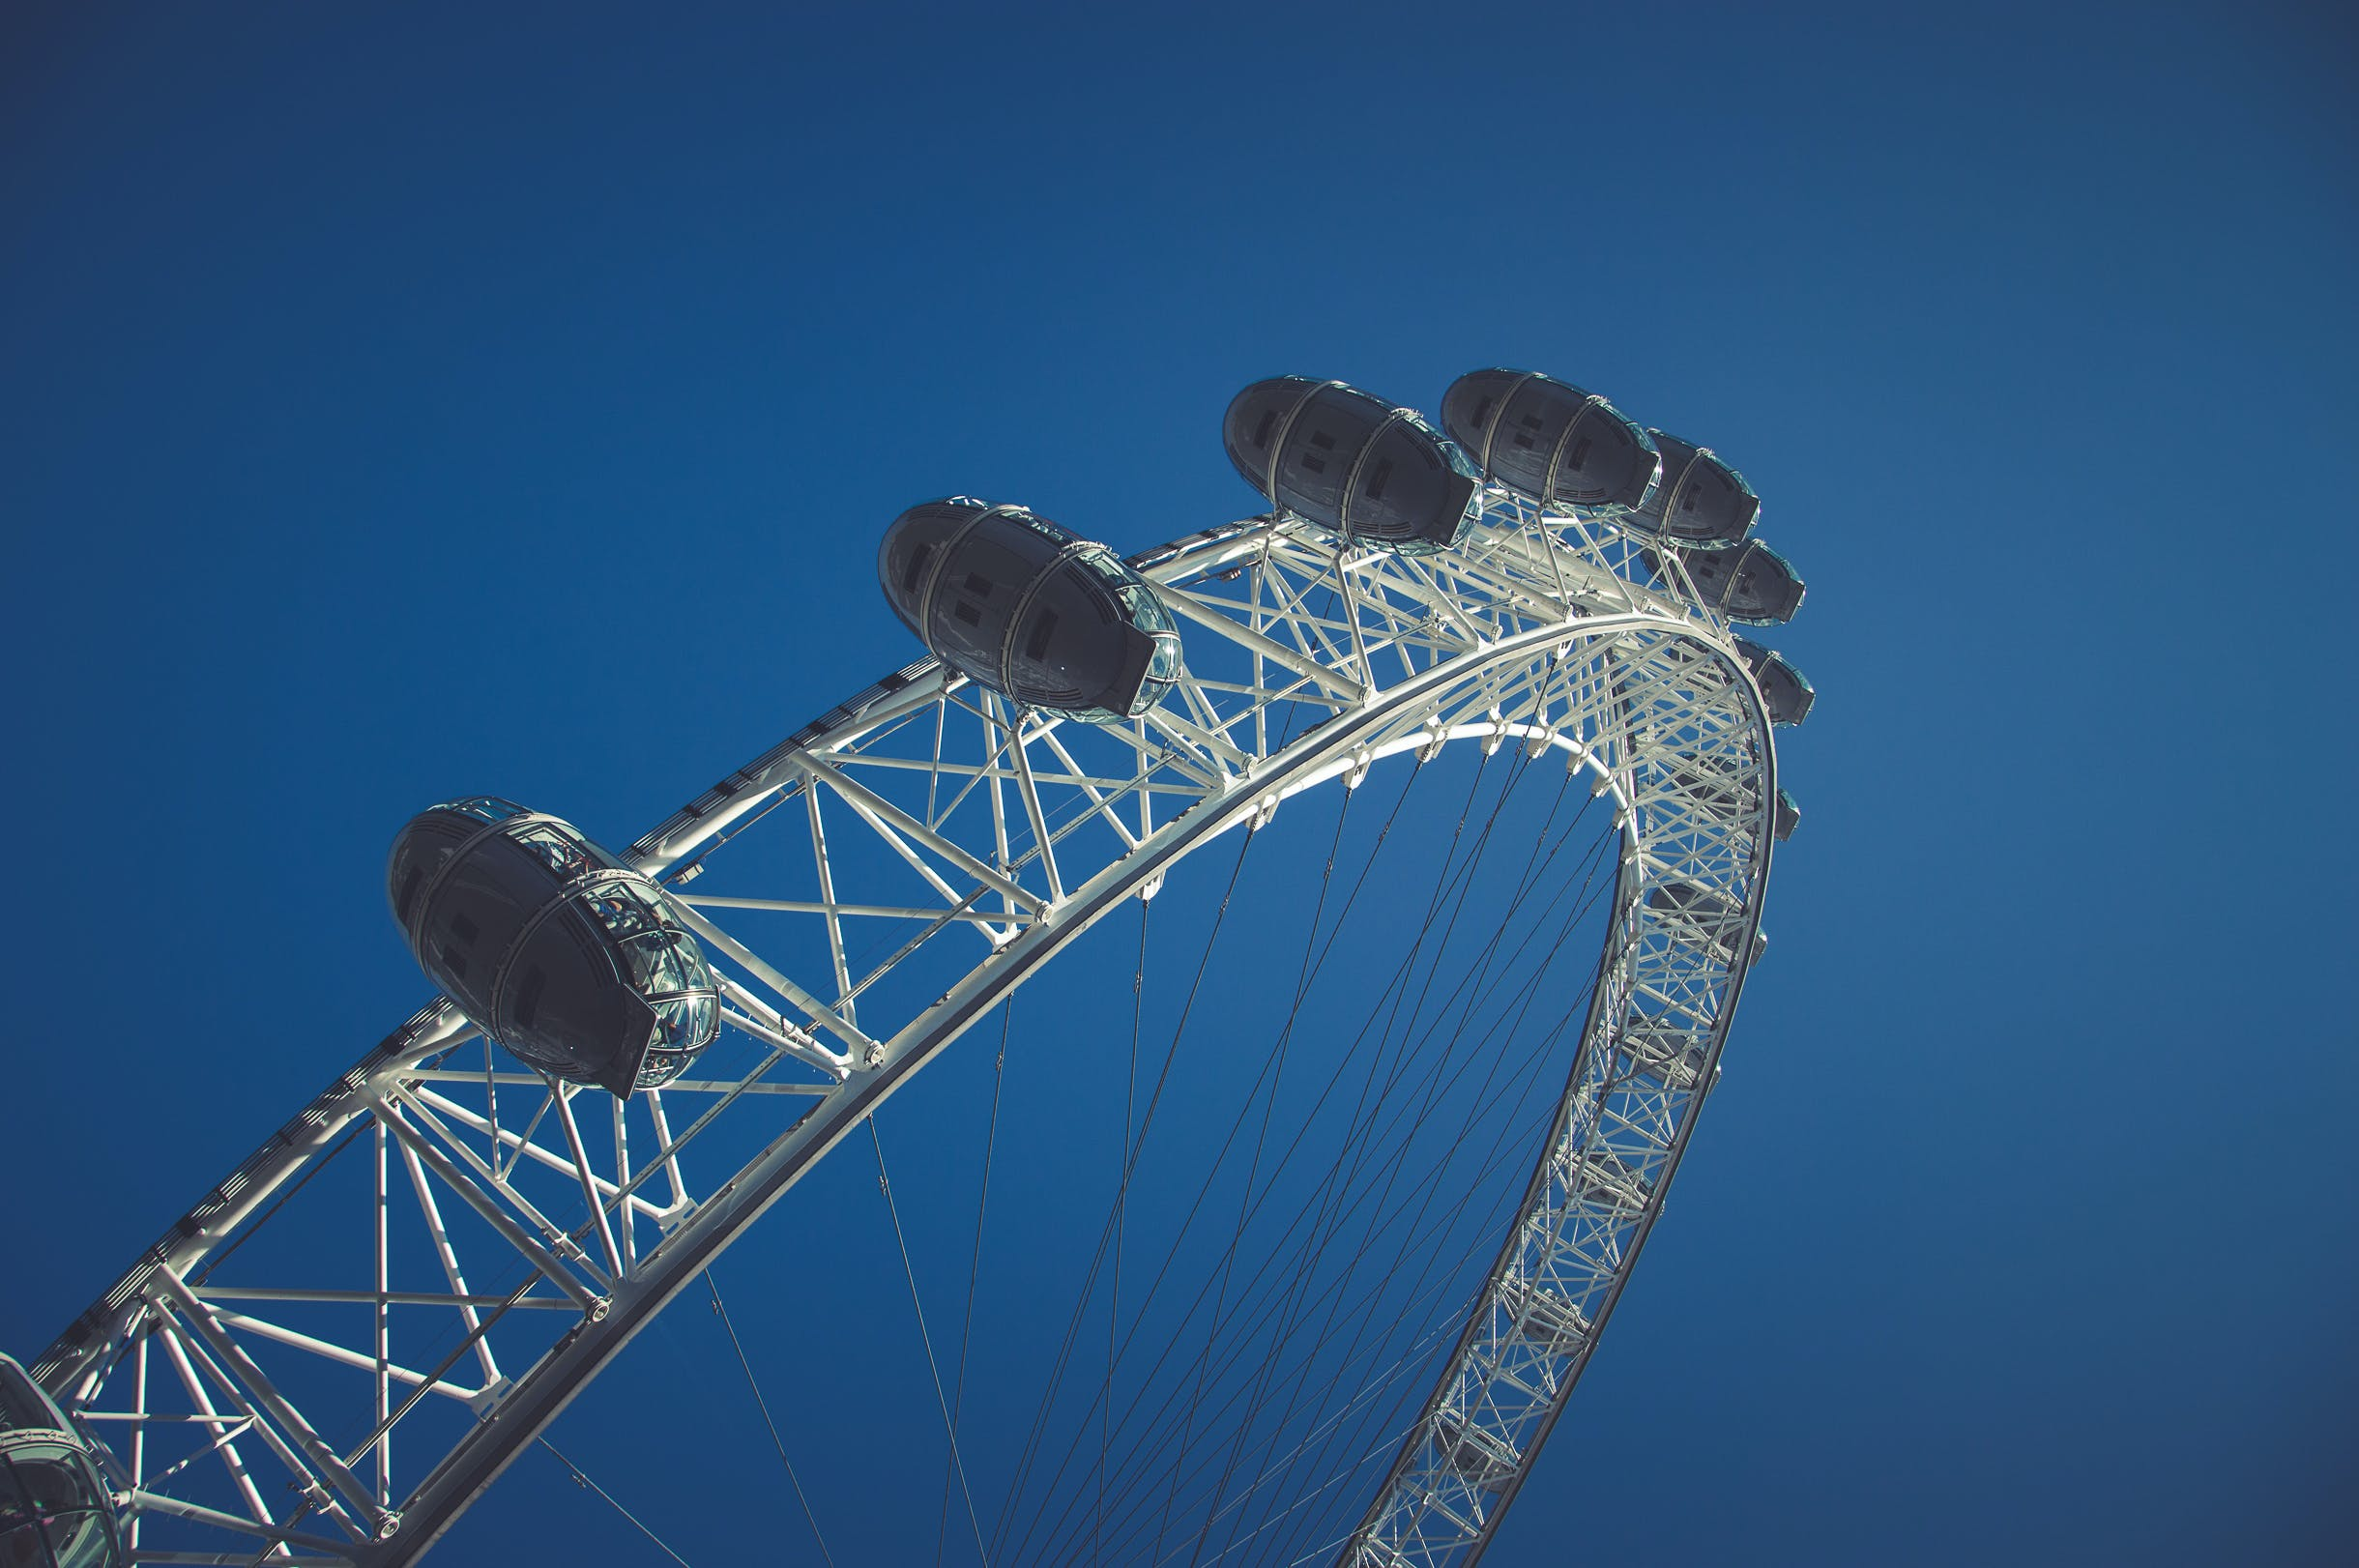 Free stock photo of blue sky, london, london eye